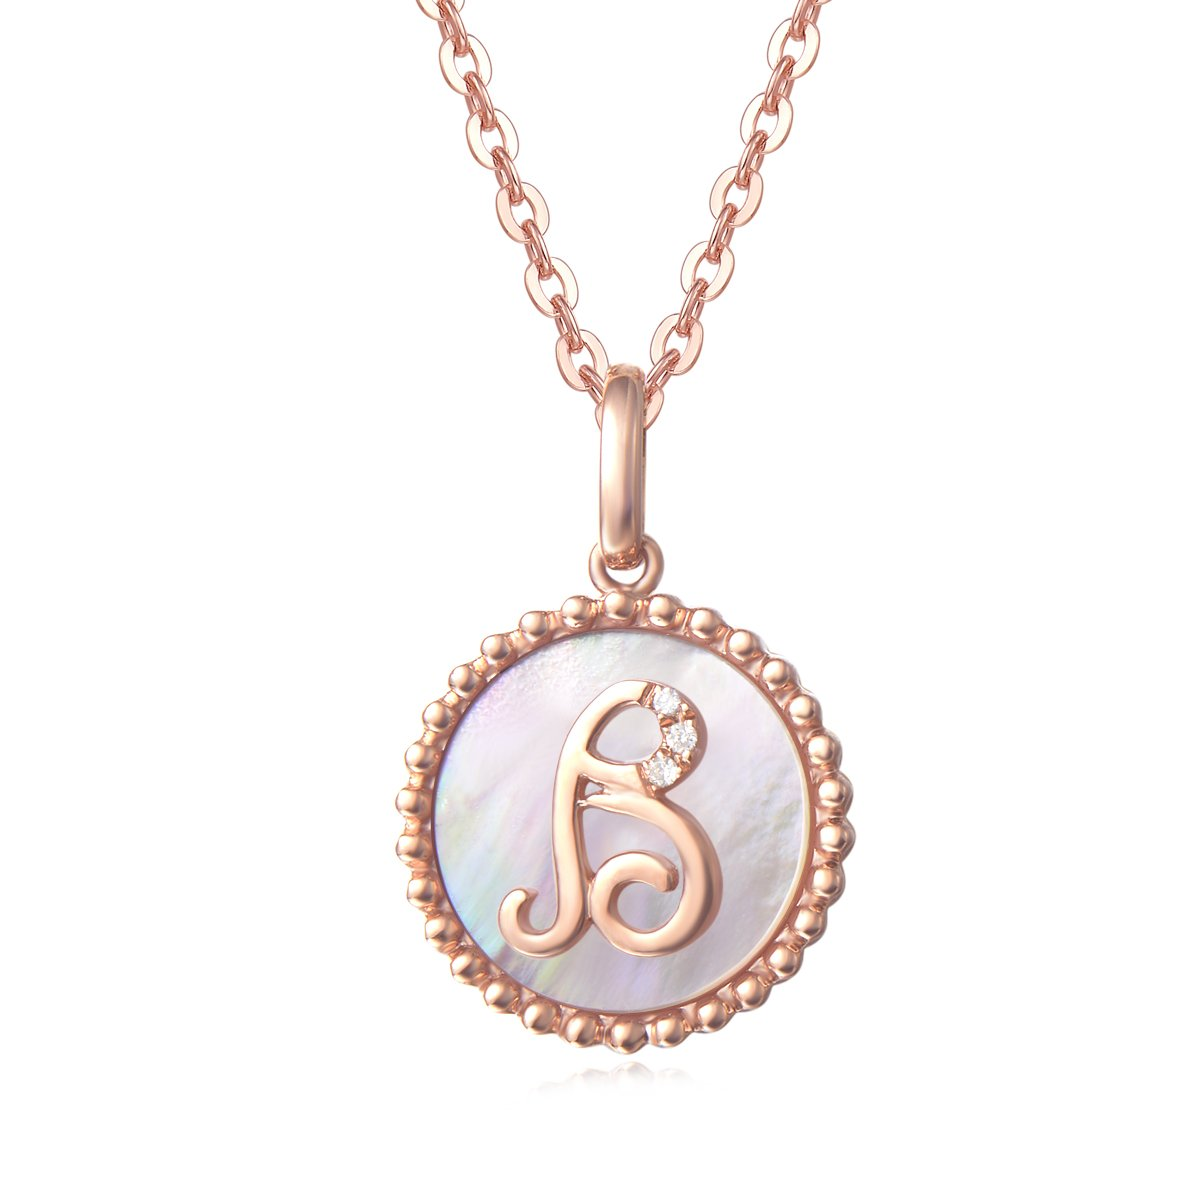 18 Solid 14K Gold Chain Solid 14K Rose Gold Small Initial Dainty Pendant Necklace Carleen Alphabet Letter Coin Pendant Necklace Set with Mother of Pearl Round Diamonds Fine Jewelry for Women Girls